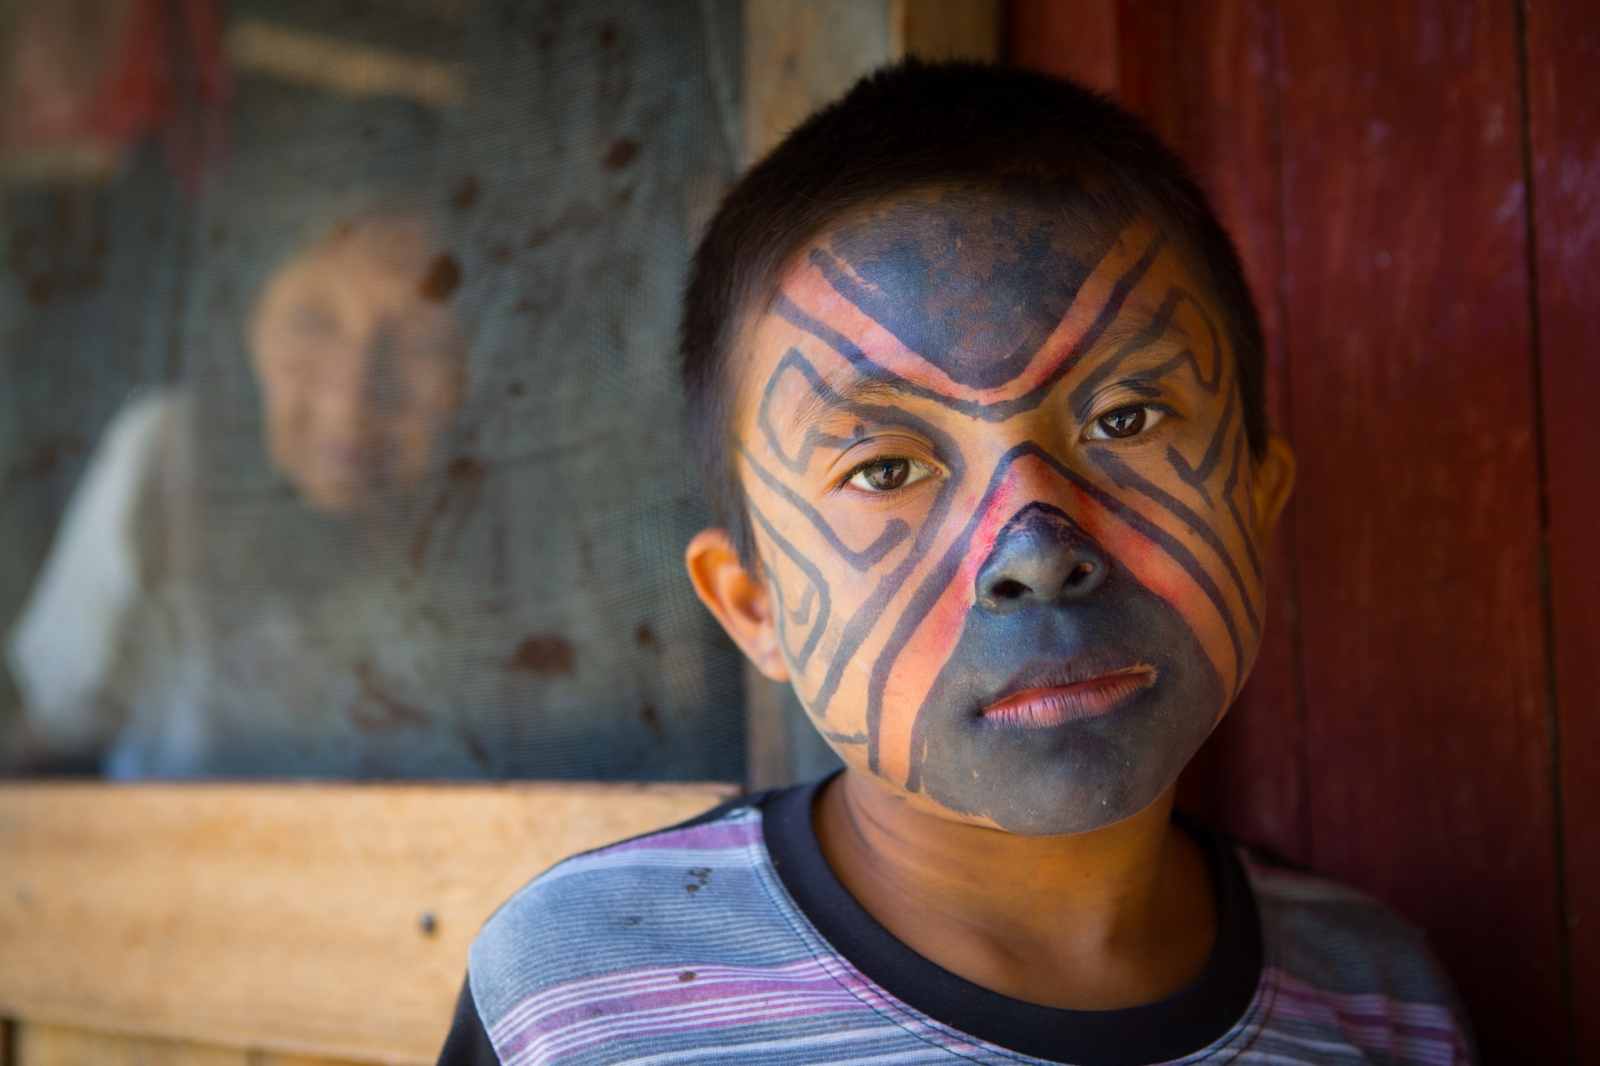 Indigenous boy in Santa Rey, Peru. From an assignment with Science Magazine looking at the social and environmental issues affecting isolated tribes in and around the Alto Purús National Park, Peru.